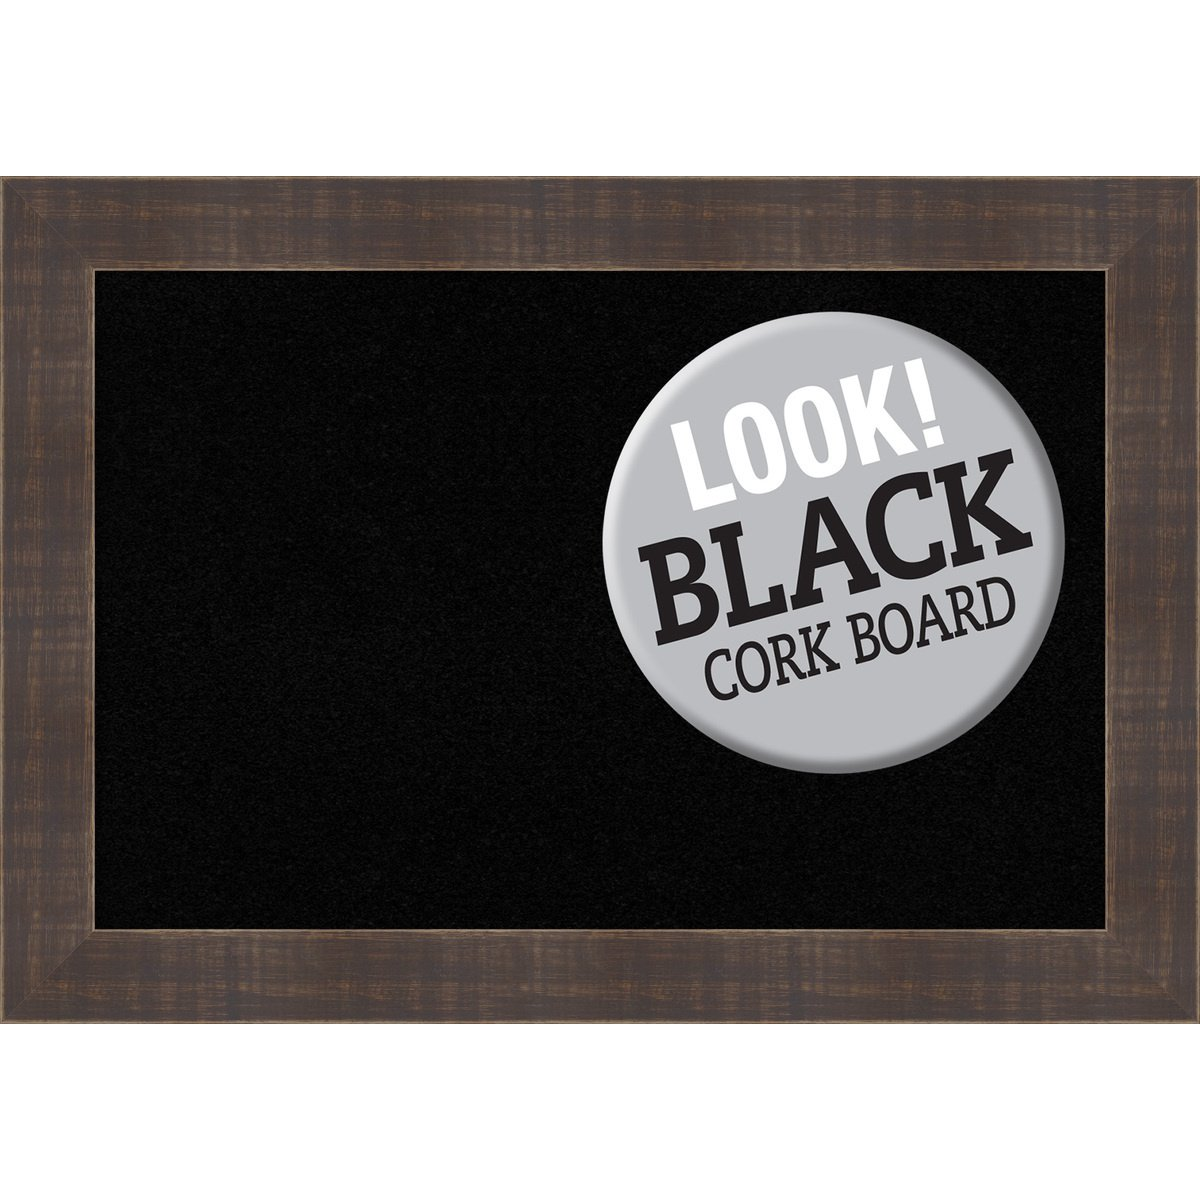 Amanti Art Framed Black Cork Board Whiskey Brown Rustic: Outer Size 21 x 15'', Small